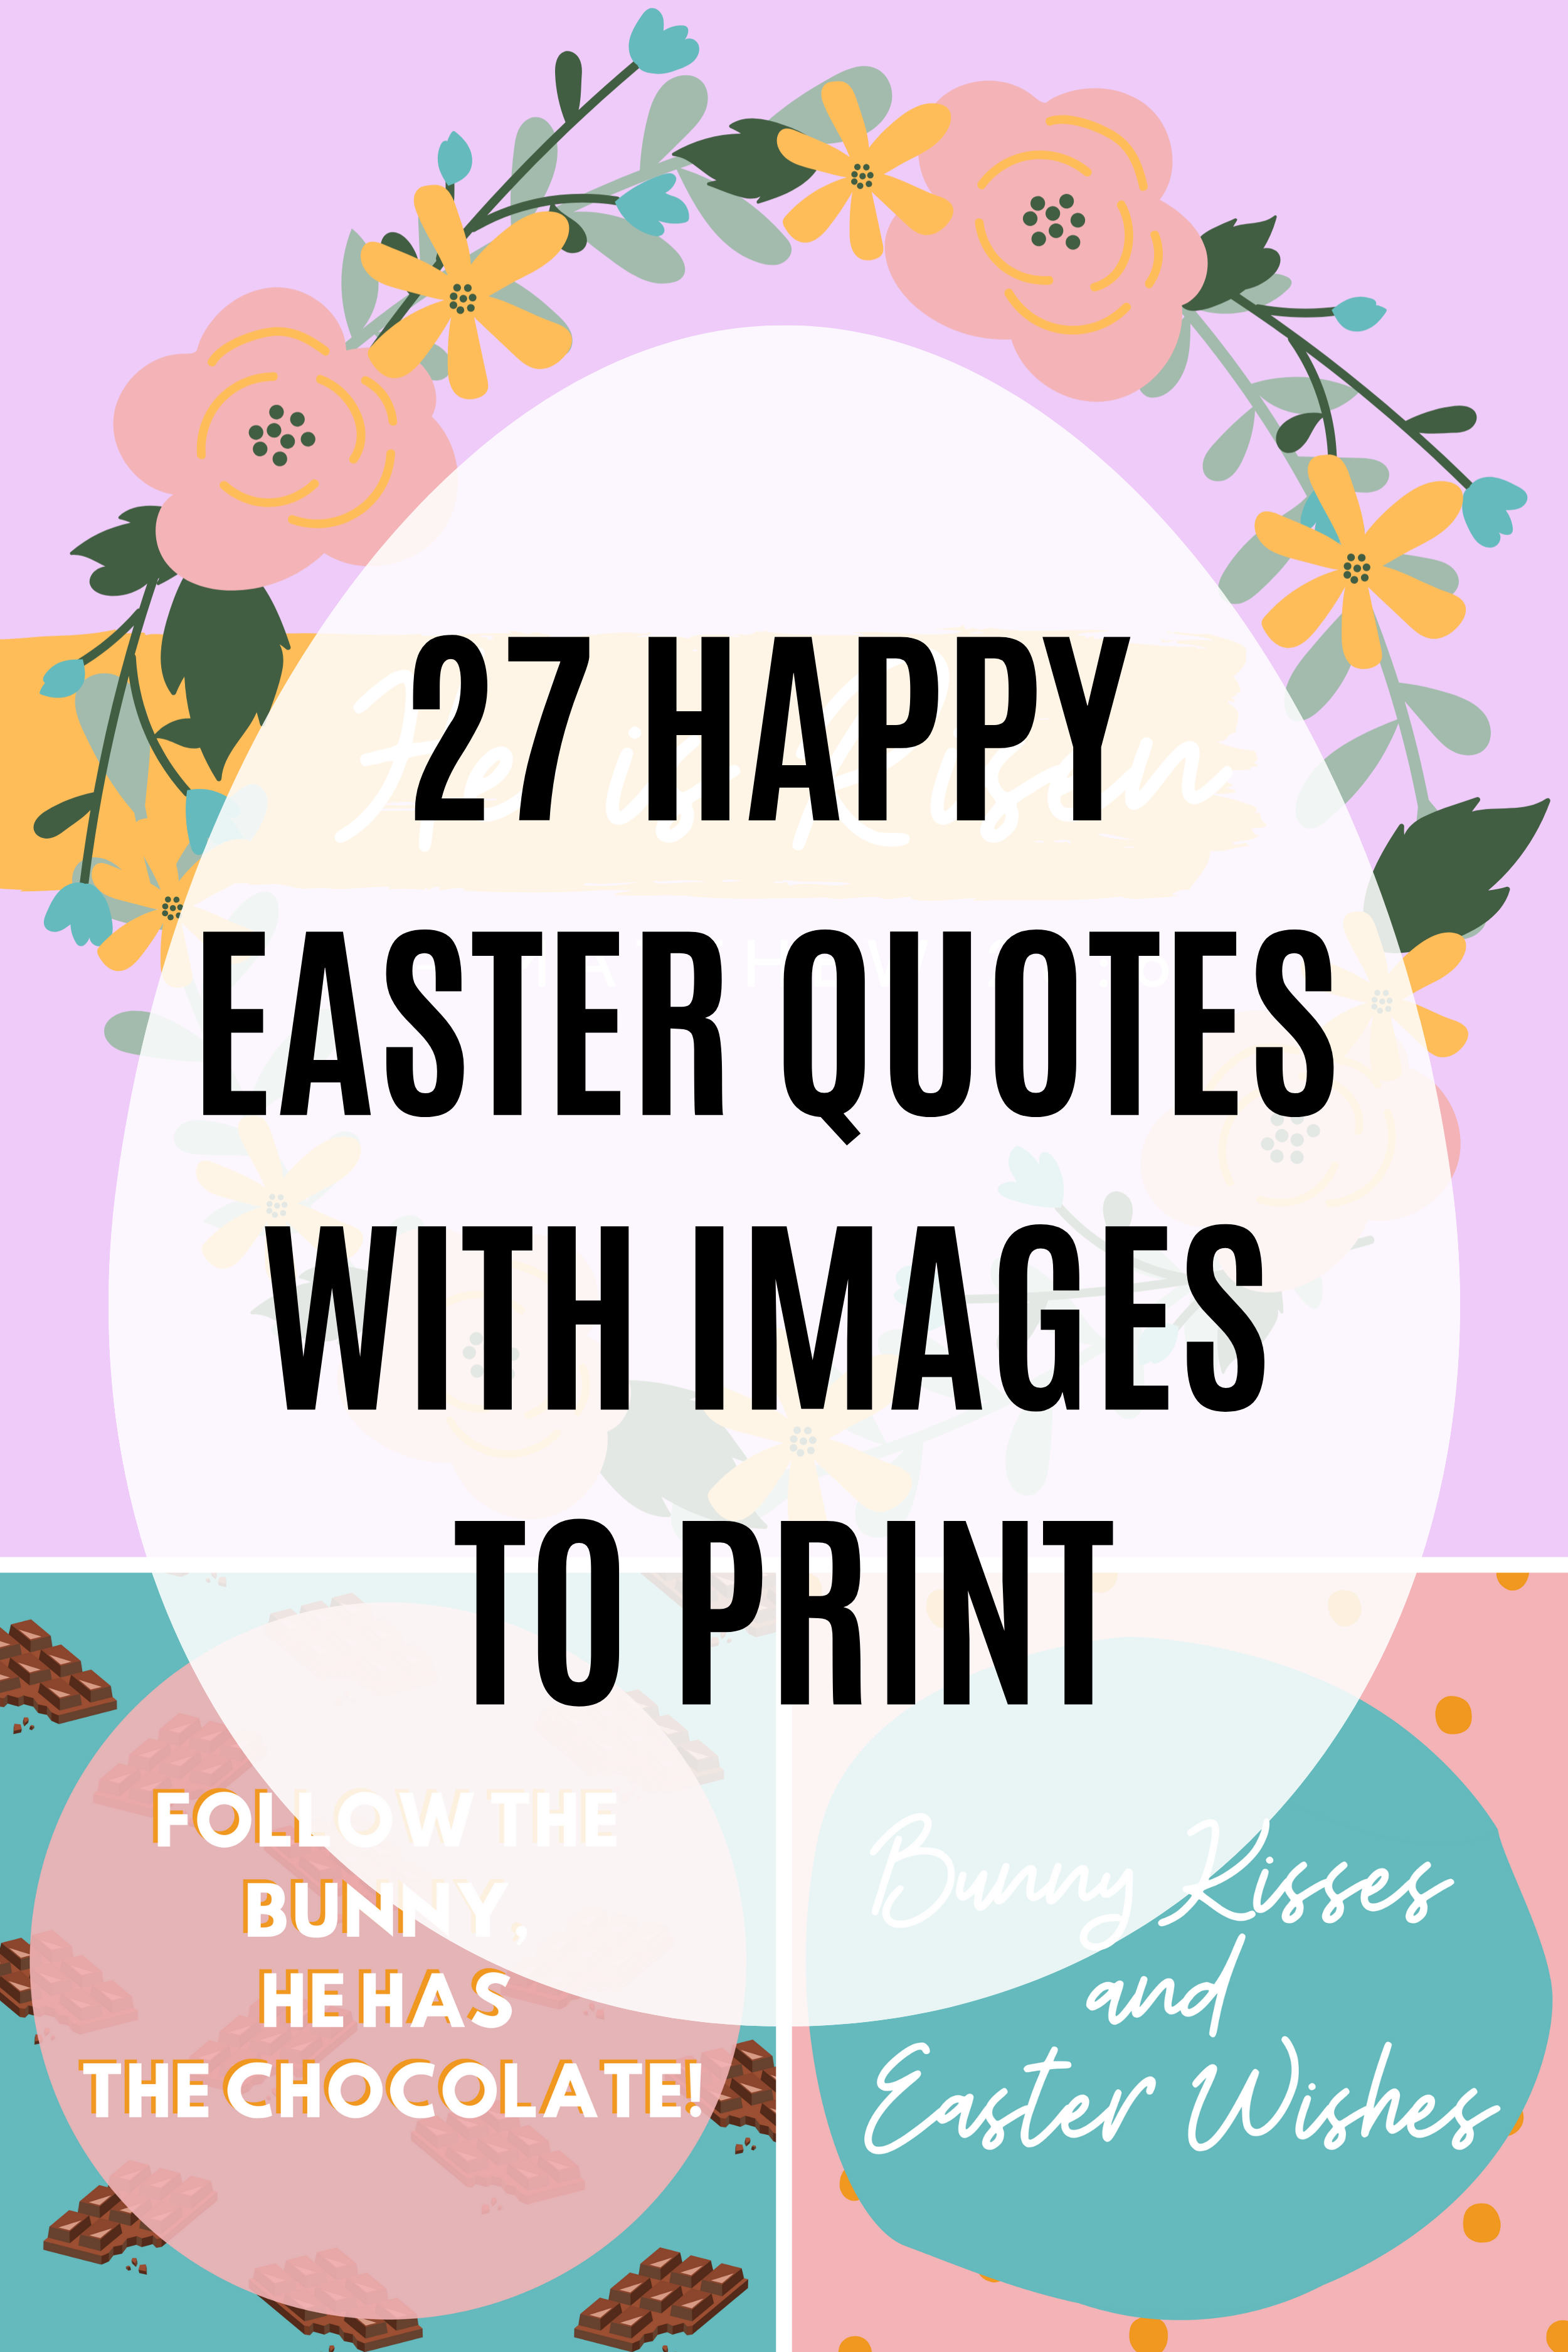 27 Happy Easter Quotes with Images to Print